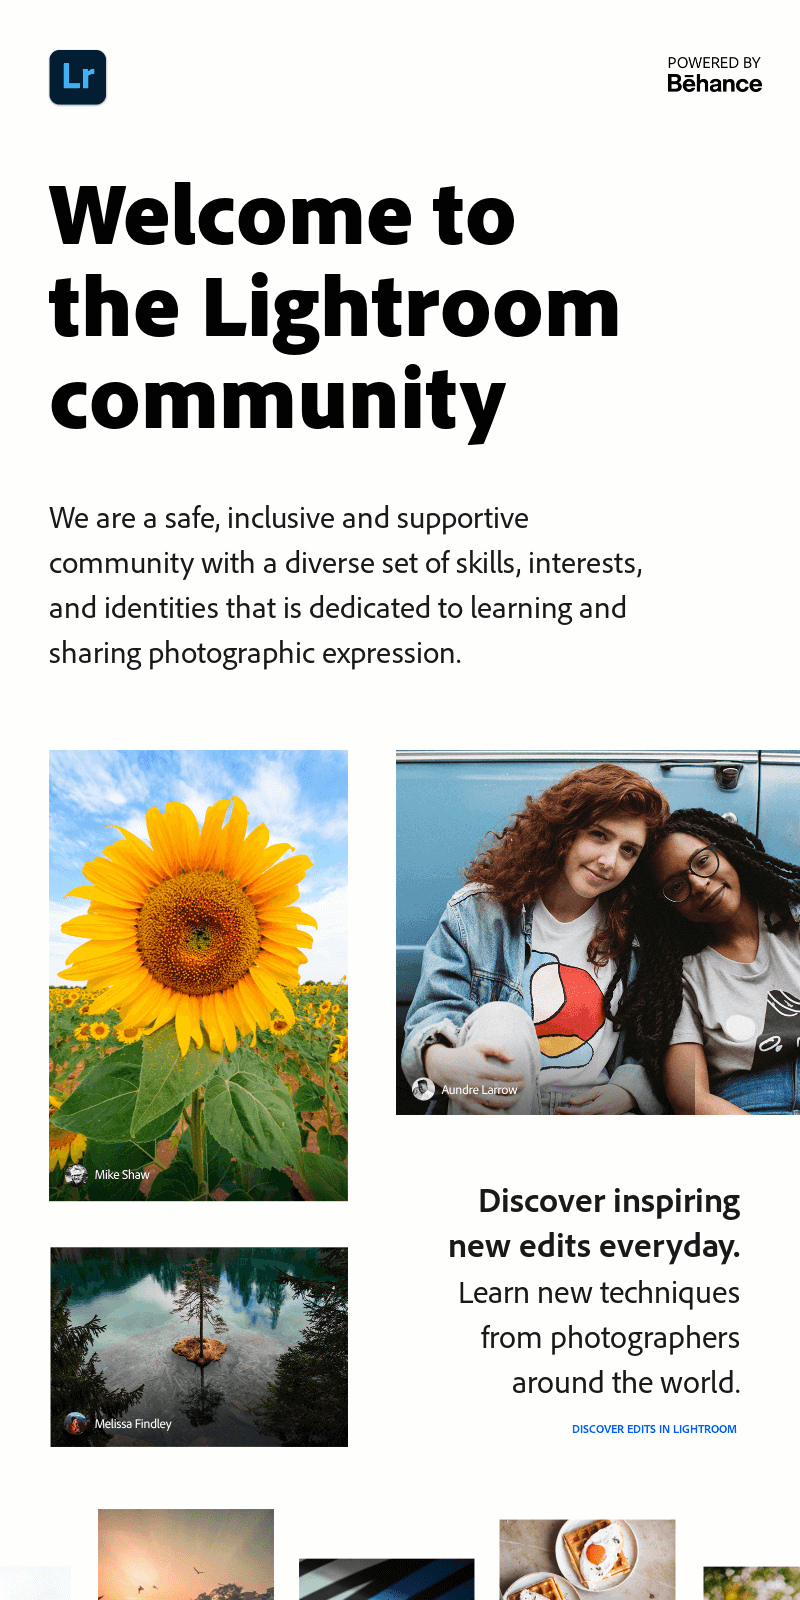 Welcome to the Lightroom community